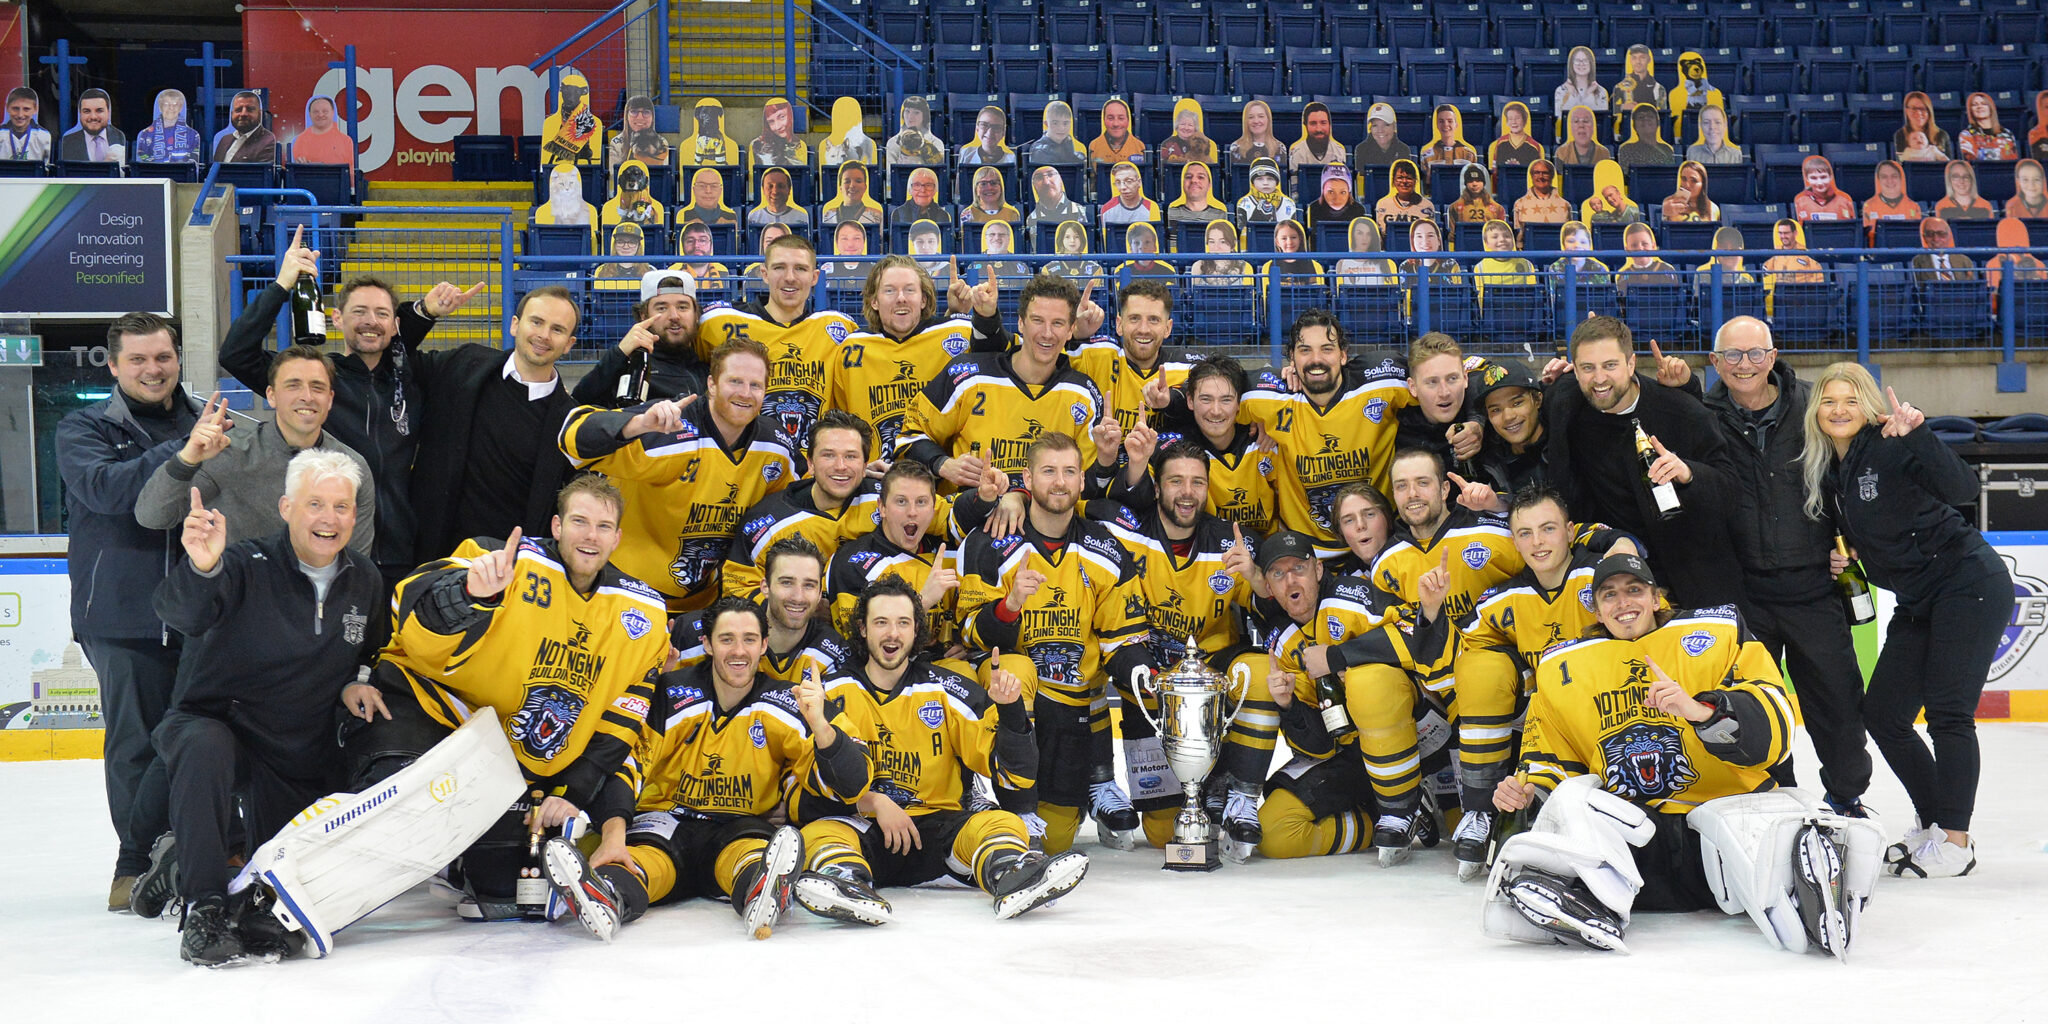 GARRIGAN DELIGHTED TO WIN ELITE SERIES WITH PANTHERS